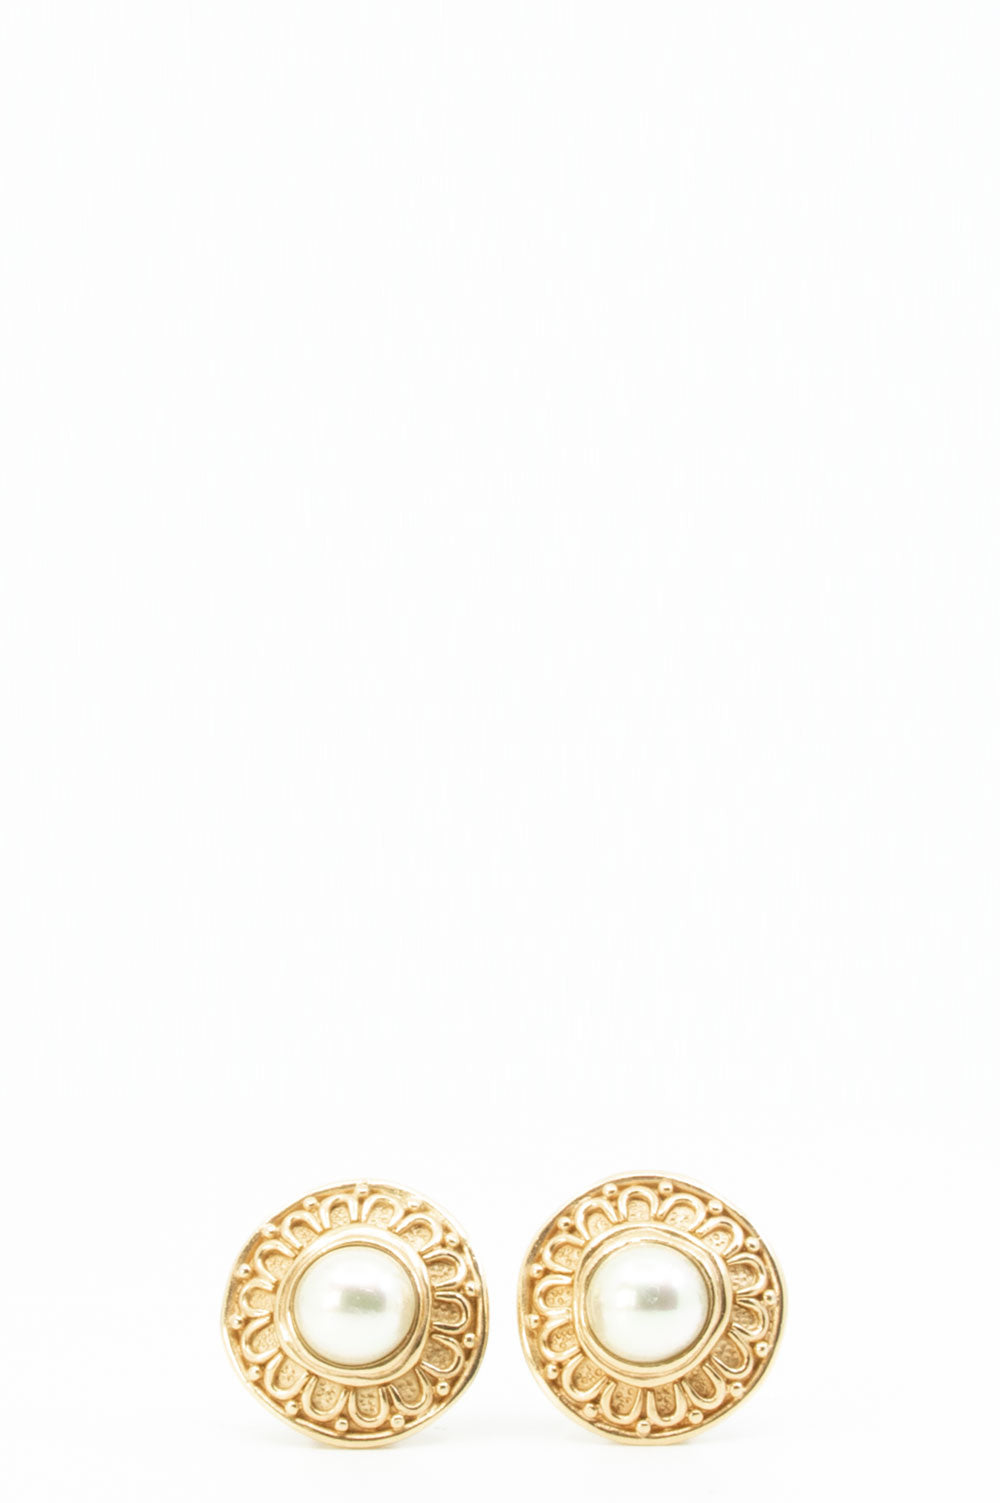 Christian Dior Vintage Earclips in gold.